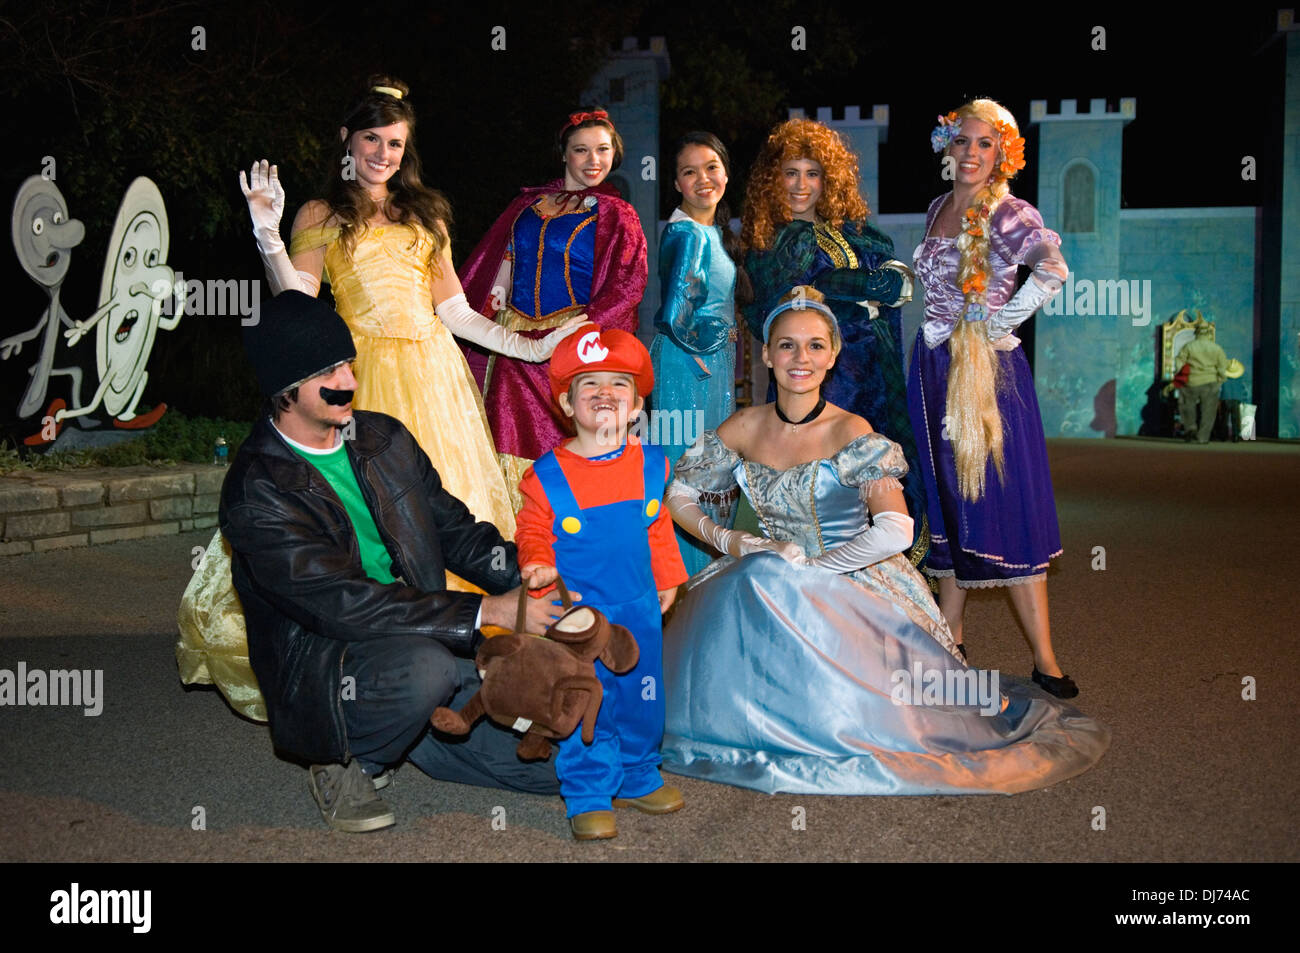 Toddler Dressed Up as Mario with his Father and Disney Princesses at the Louisville Zoo Halloween Party in Louisville Kentucky - Stock Image